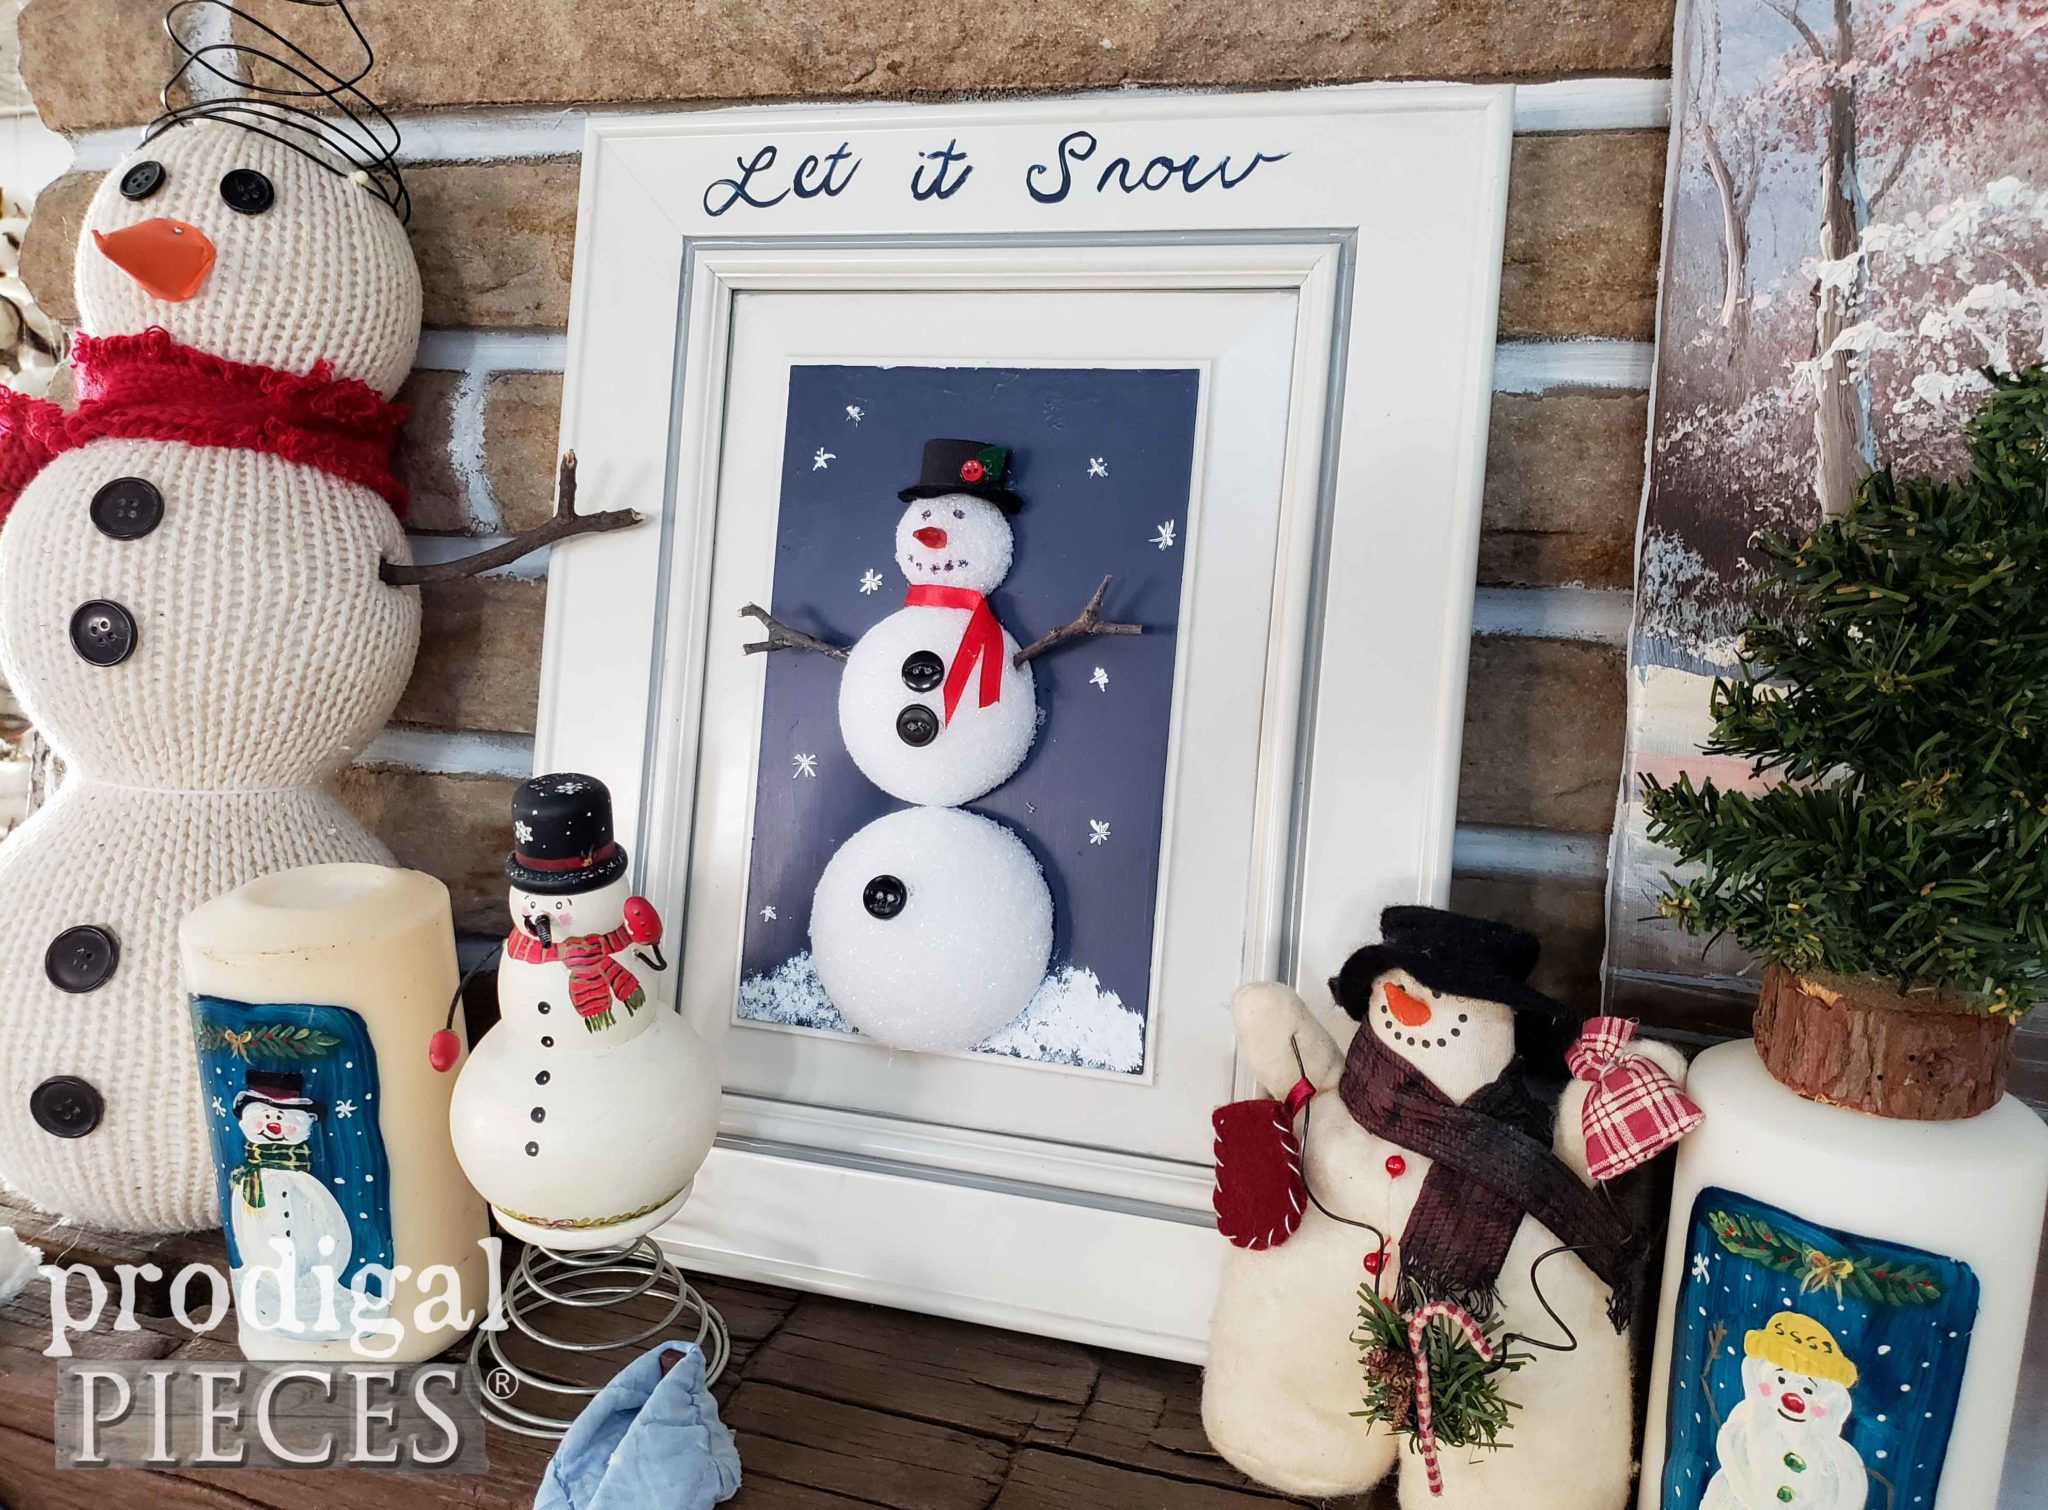 Handmade Snowman Wall Art with Tutorial by Prodigal Pieces Kids Create | prodigalpieces.com